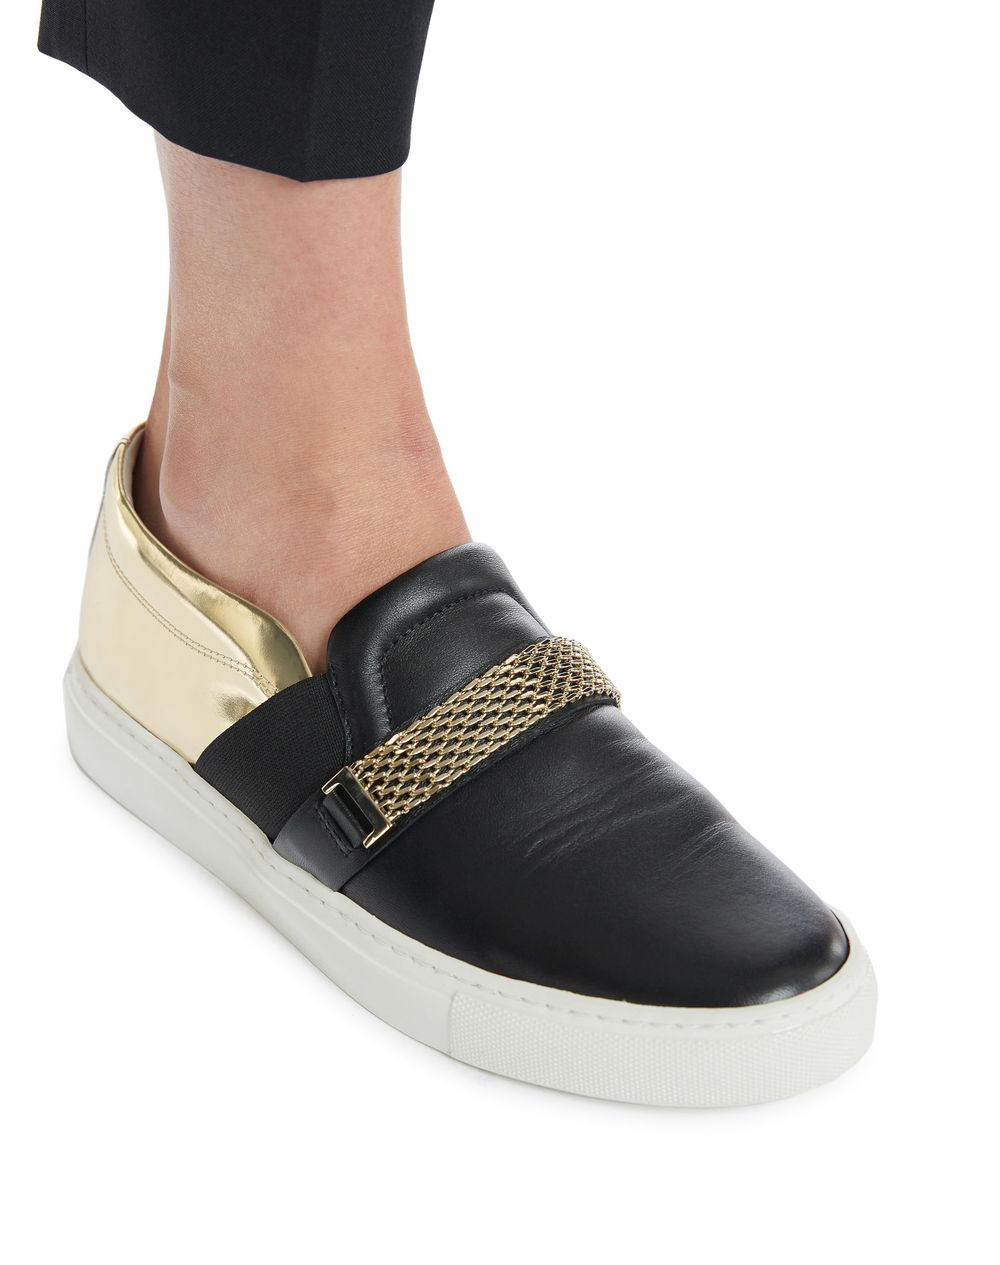 SLIP-ON SNEAKER WITH CHAIN - Lanvin